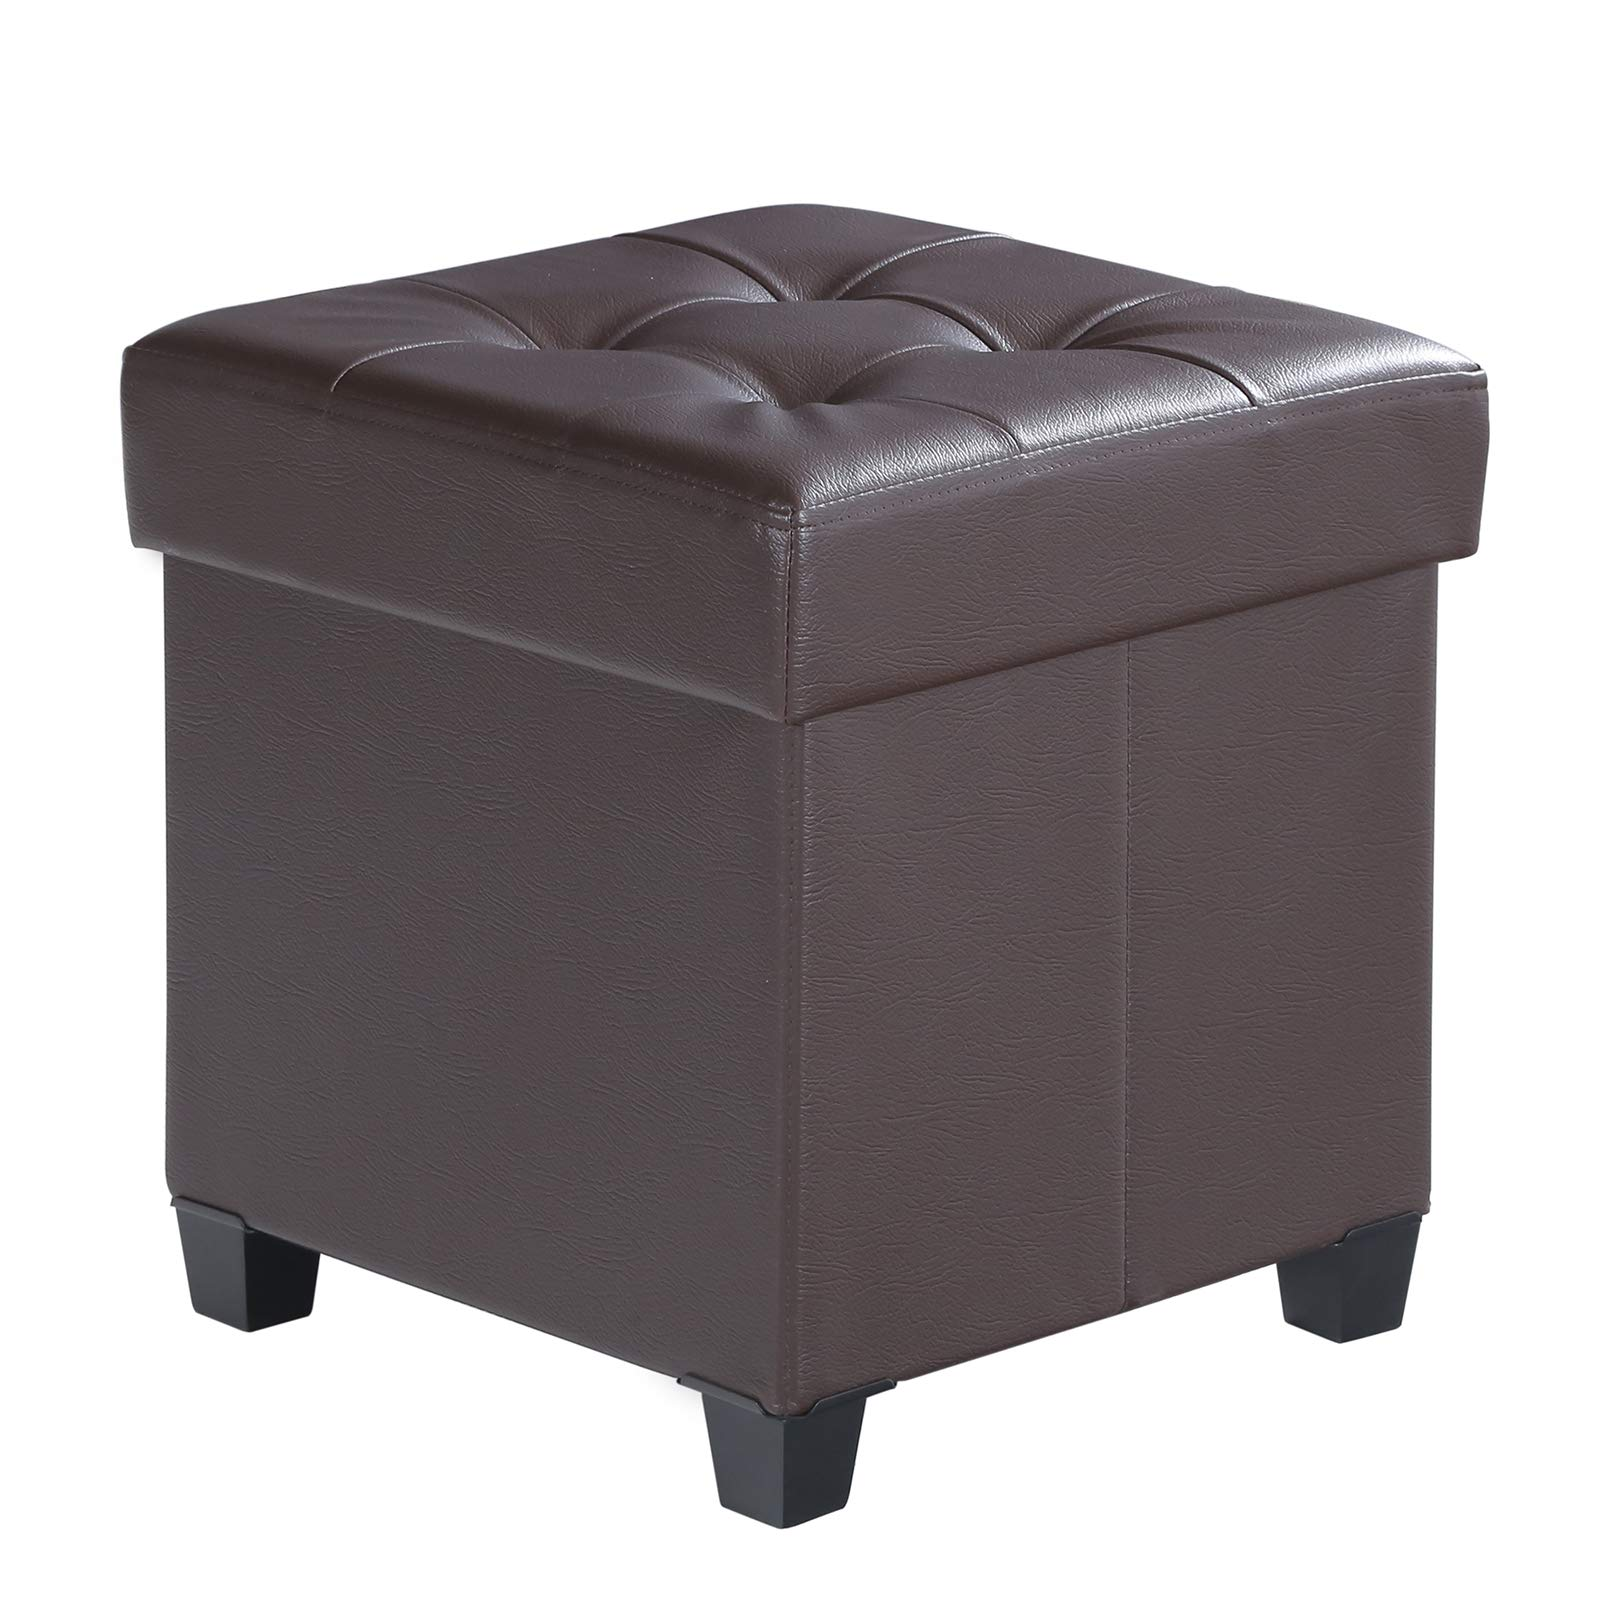 SONGMICS Collapsible Cube Storage Ottoman Foot Stool Comfortable Seat with Wooden Feet and Lid, Soft Padding, Faux Leather, Brown ULSF14BR by SONGMICS